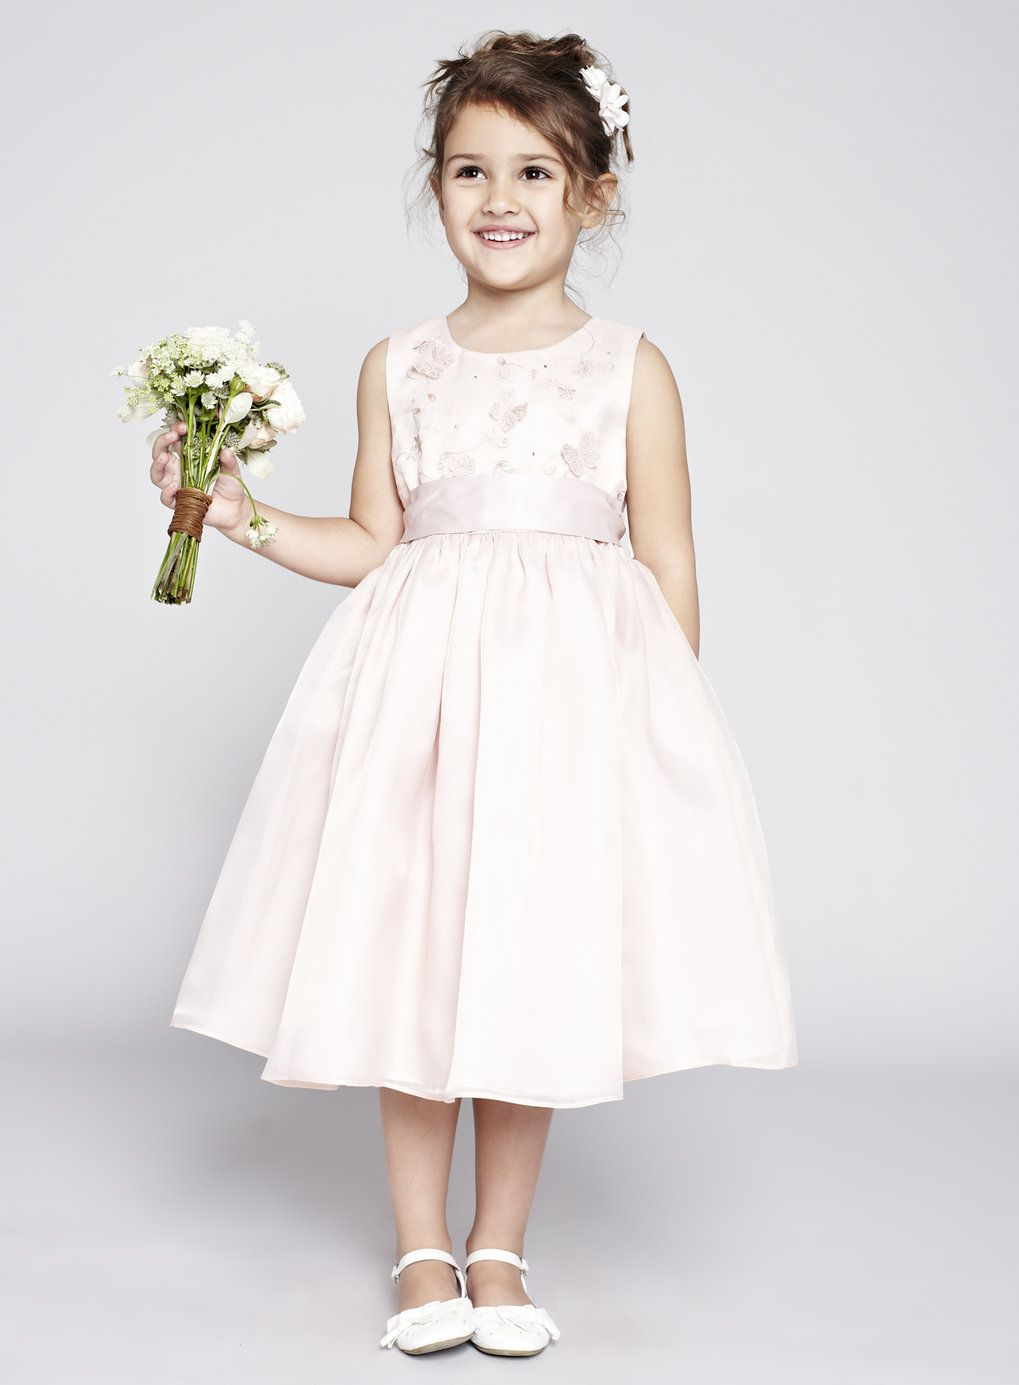 Isabelle Blush Flower Girl Dress Bhs Wedding